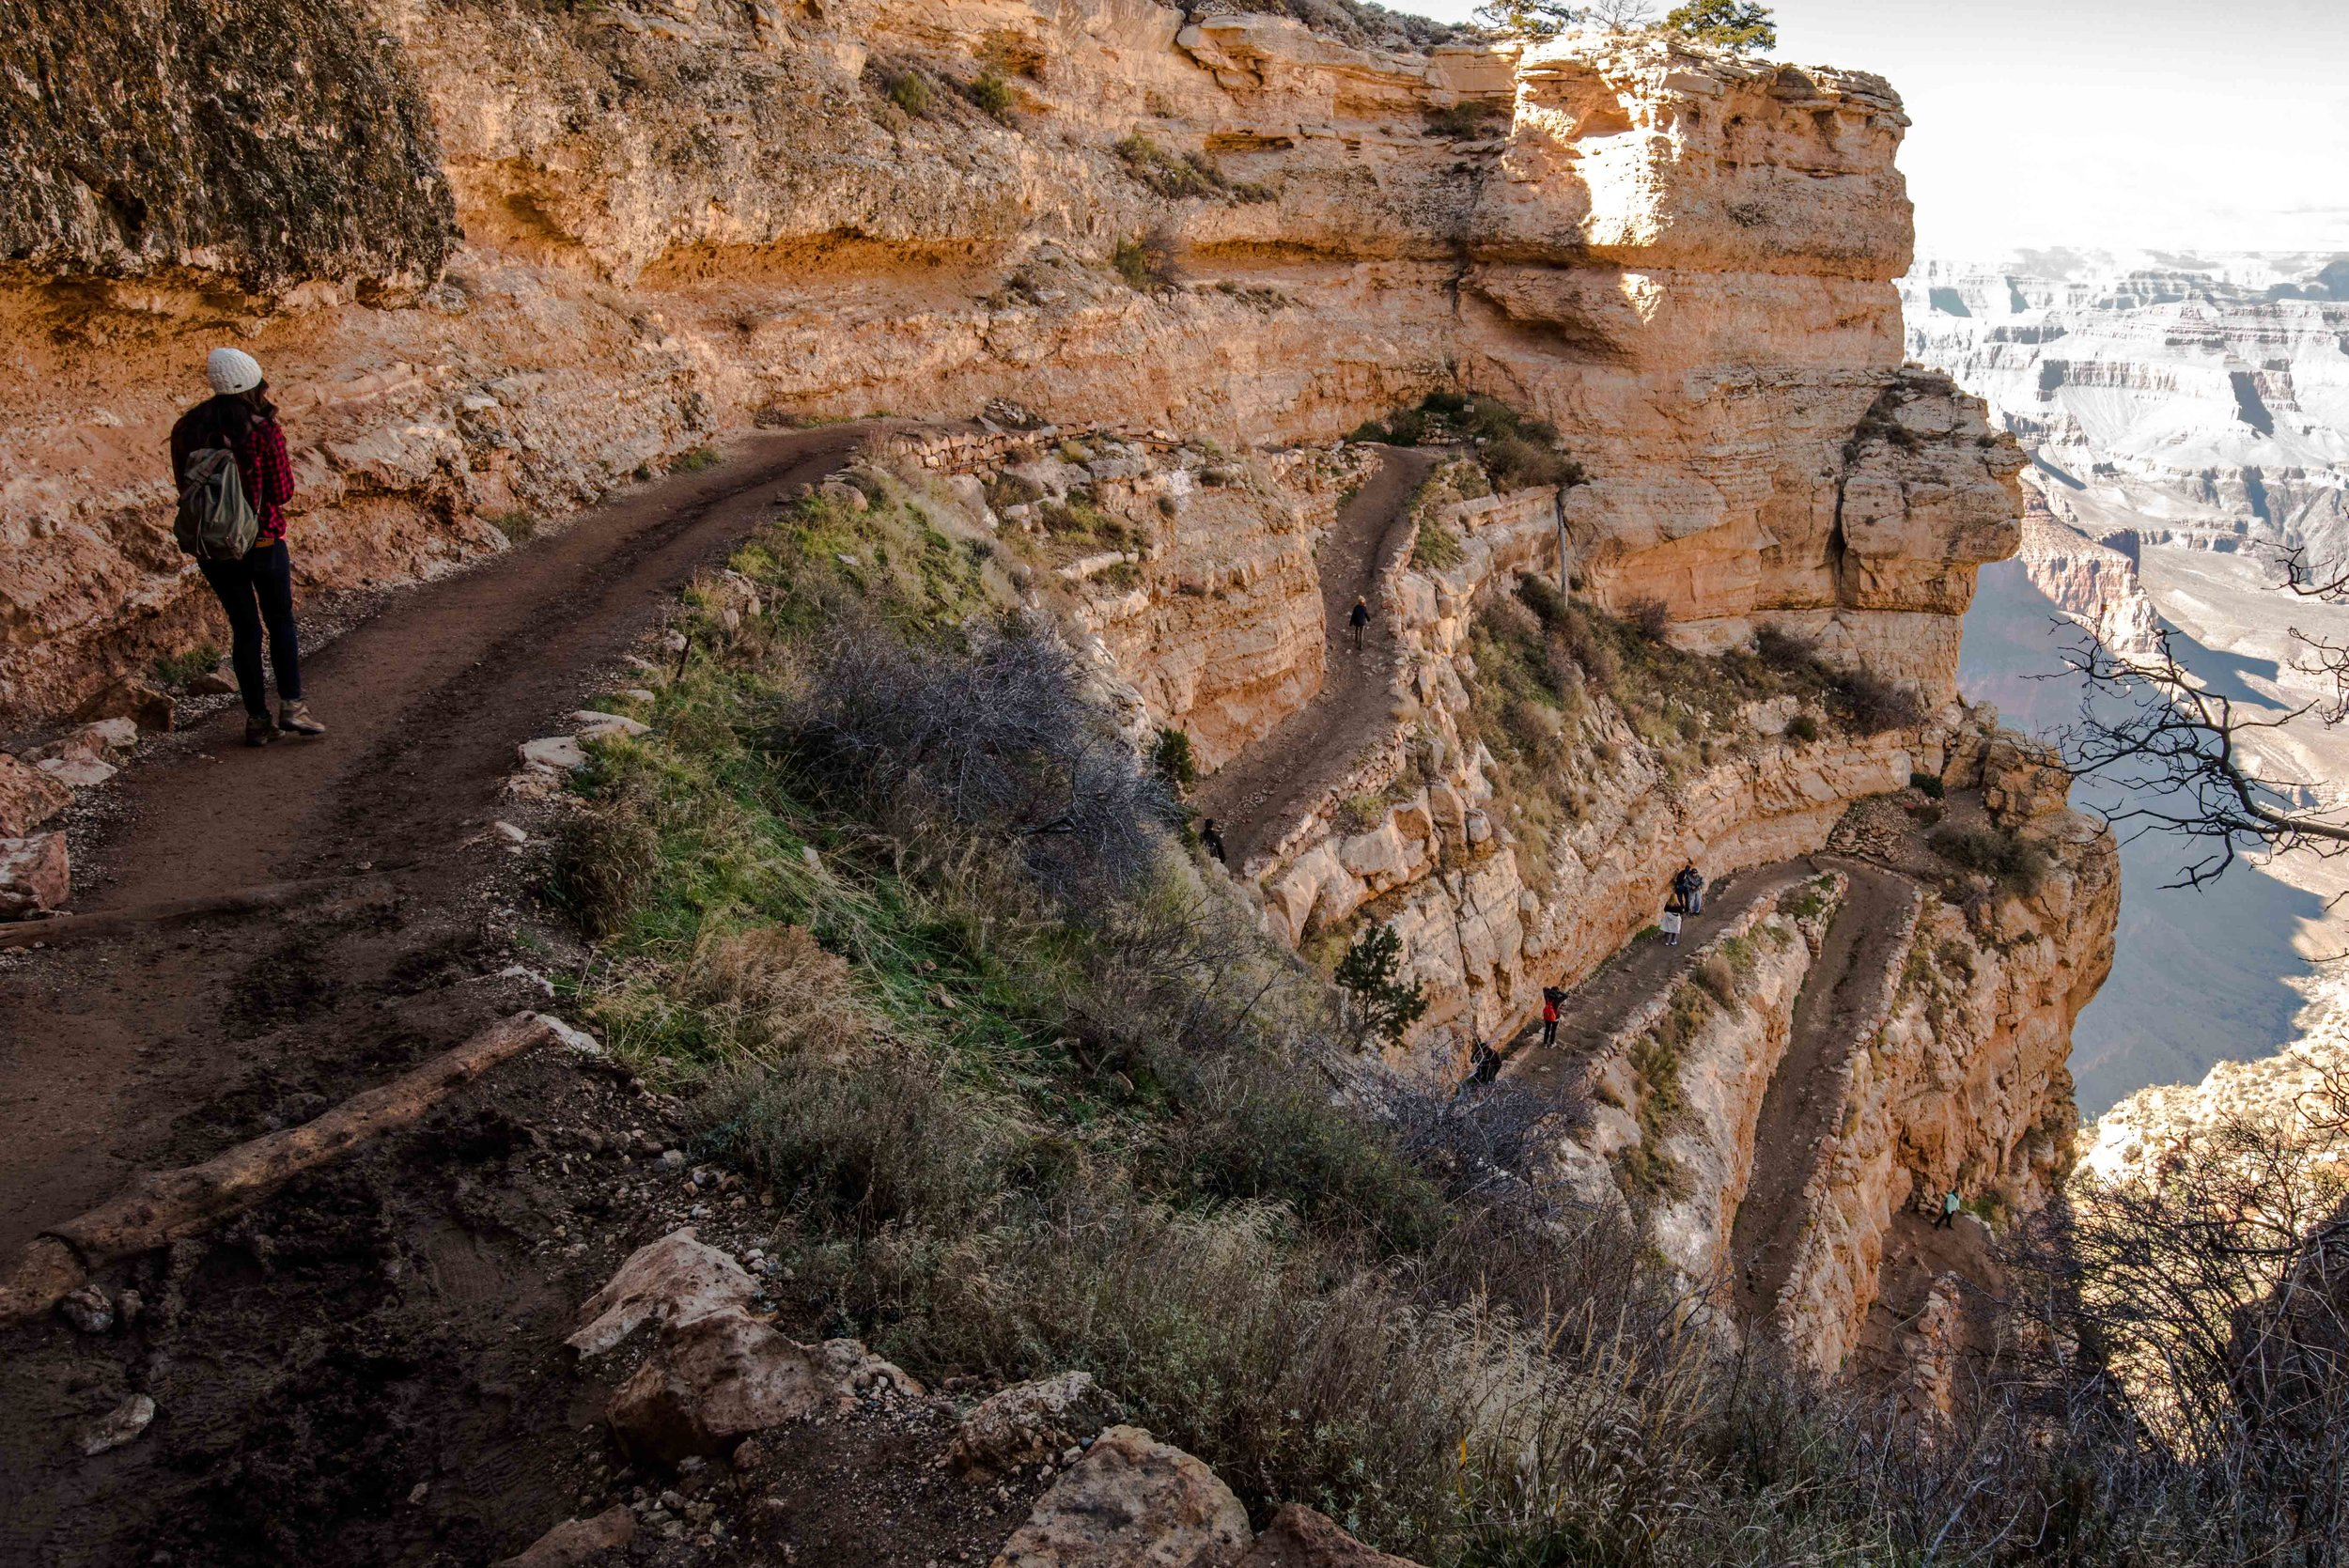 The switchbacks and descent of the Kaibab trail.